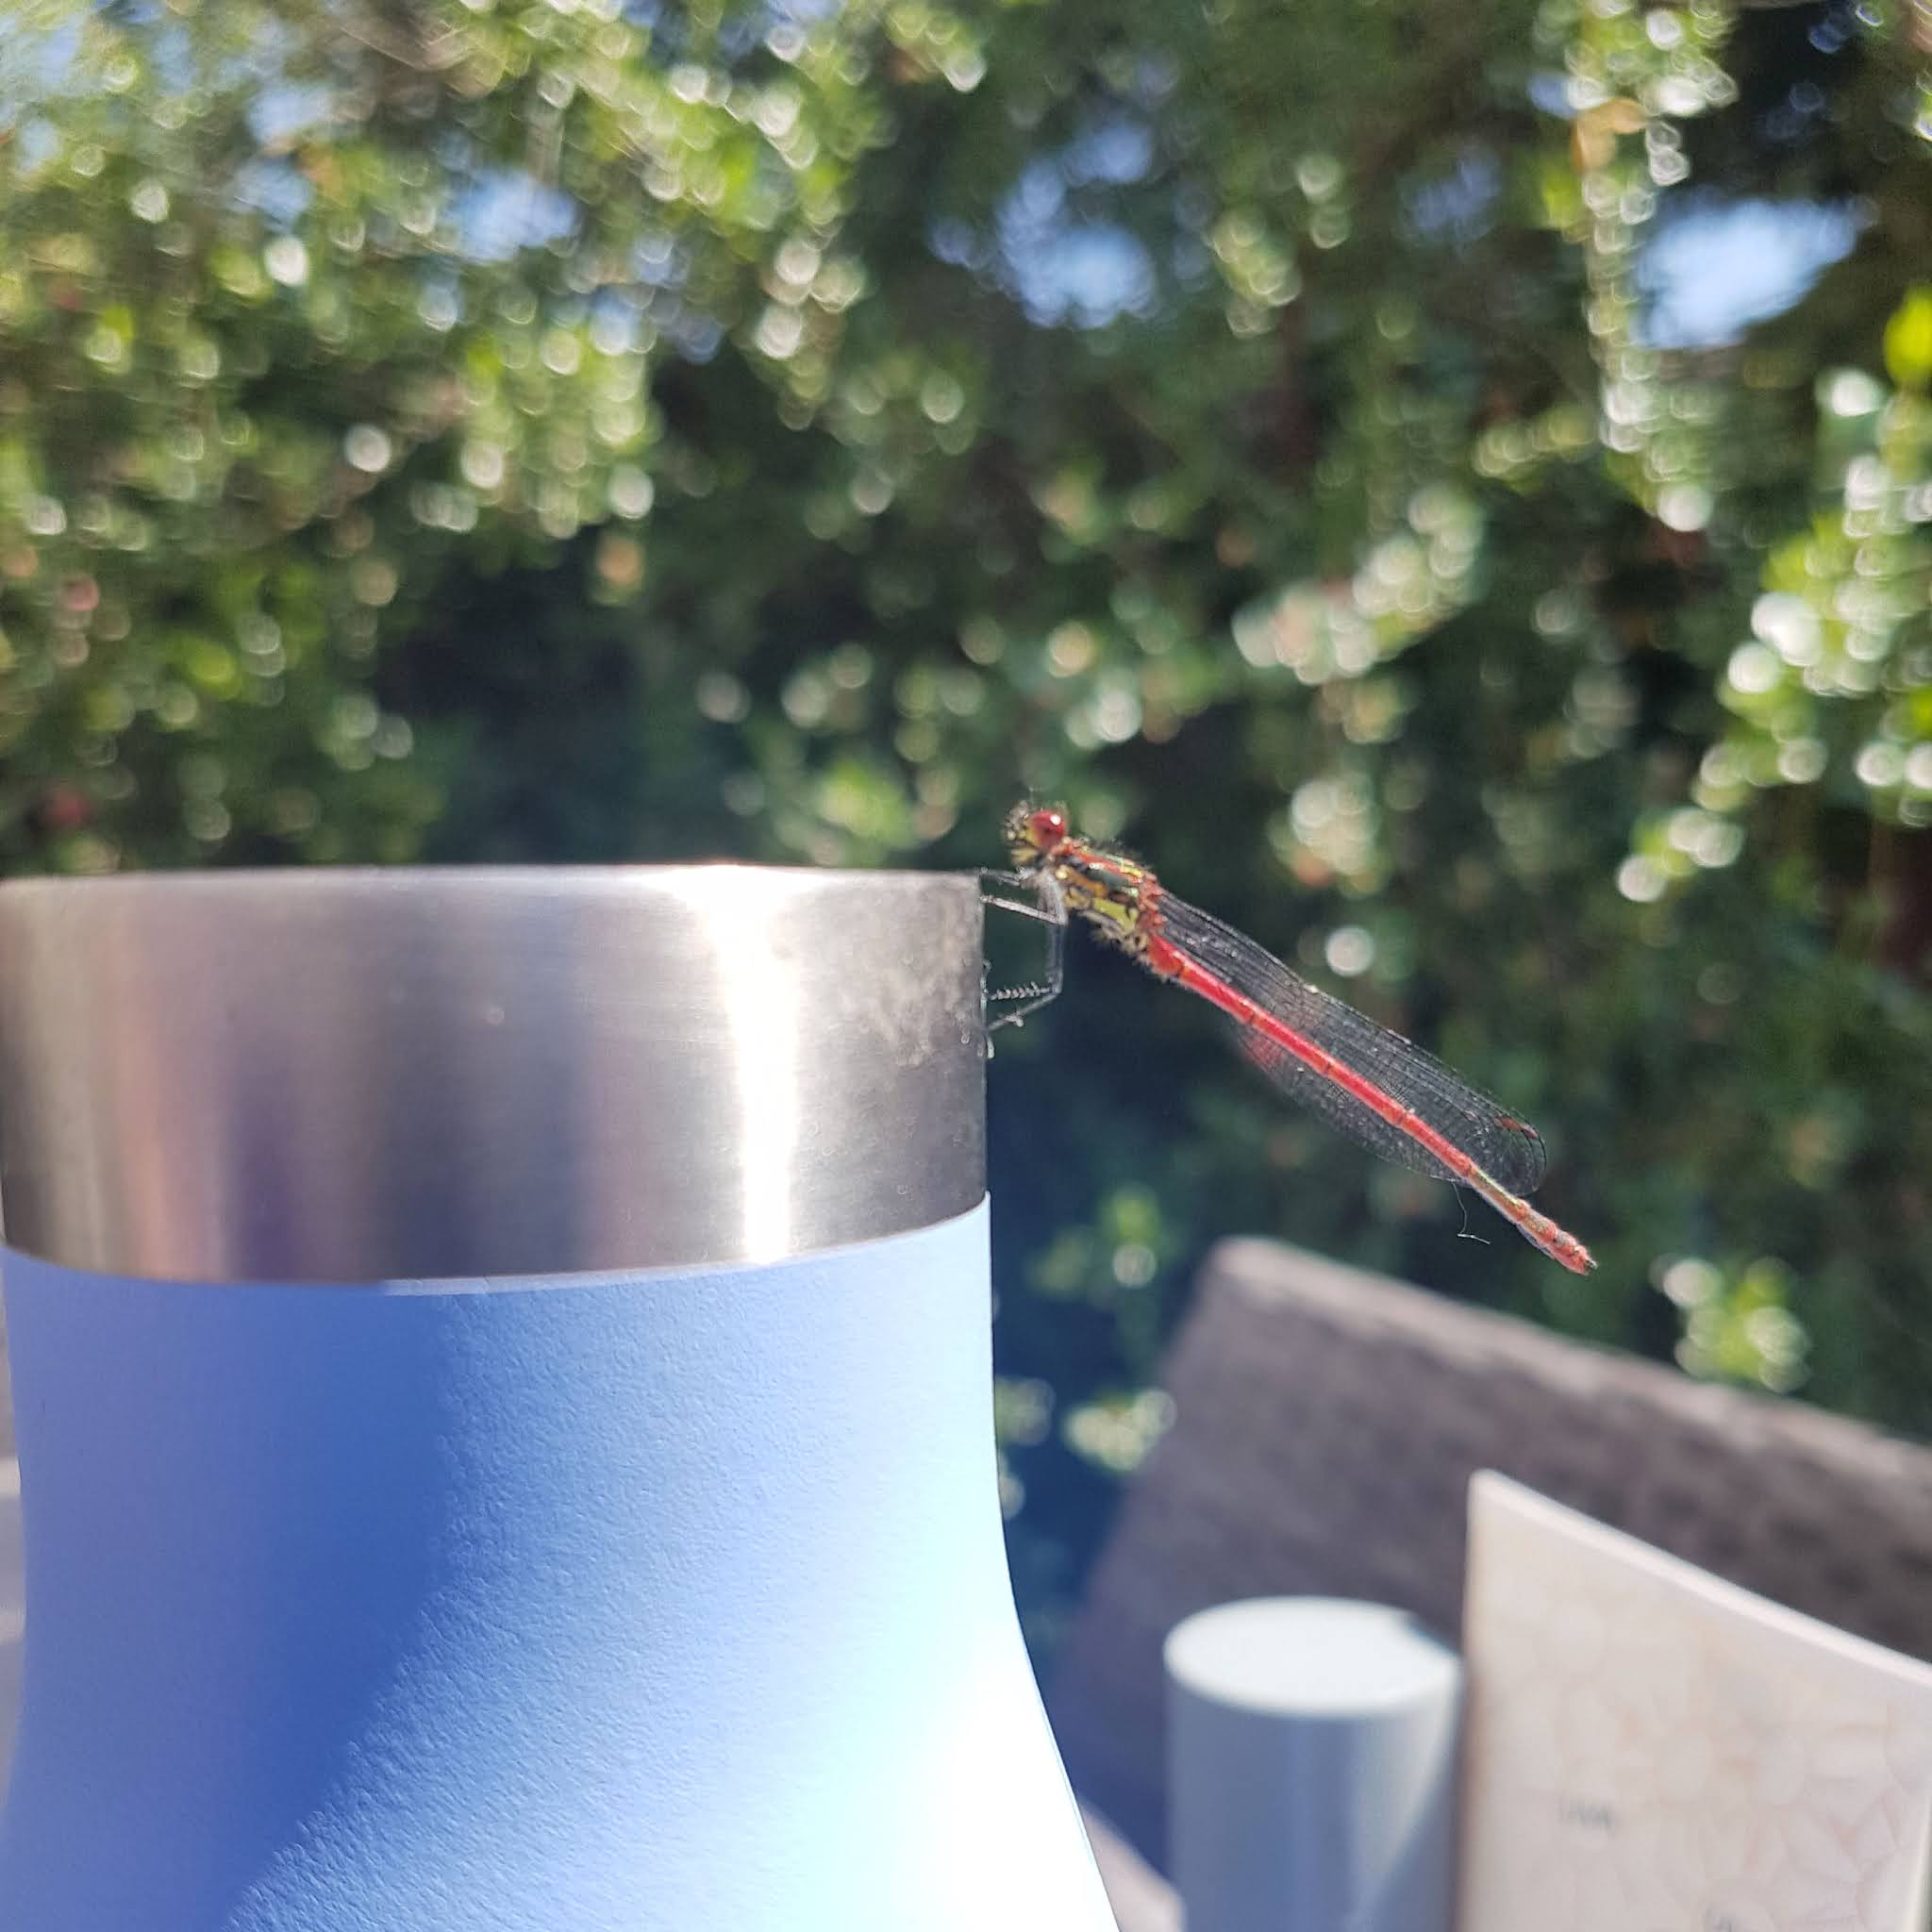 light blue reusable water bottle with a red dragon fly on the edge